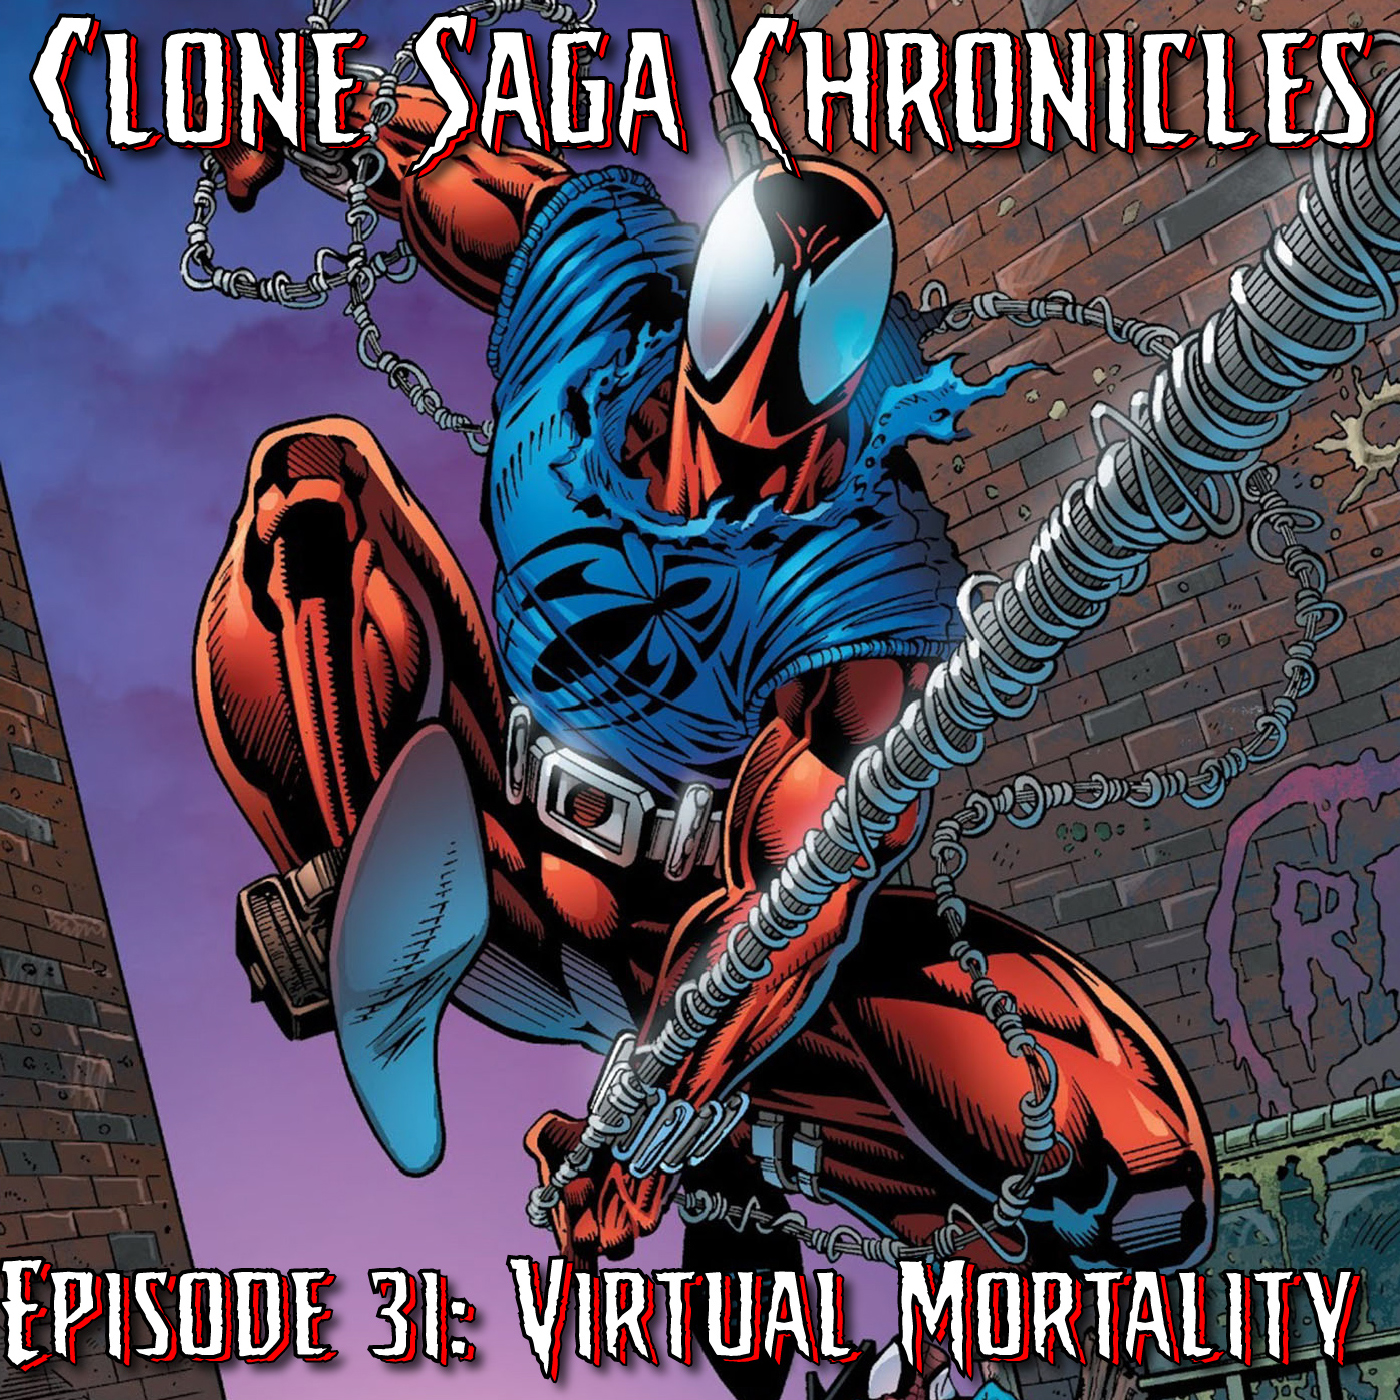 CSC Episode 31: Virtual Mortality (November 1995)